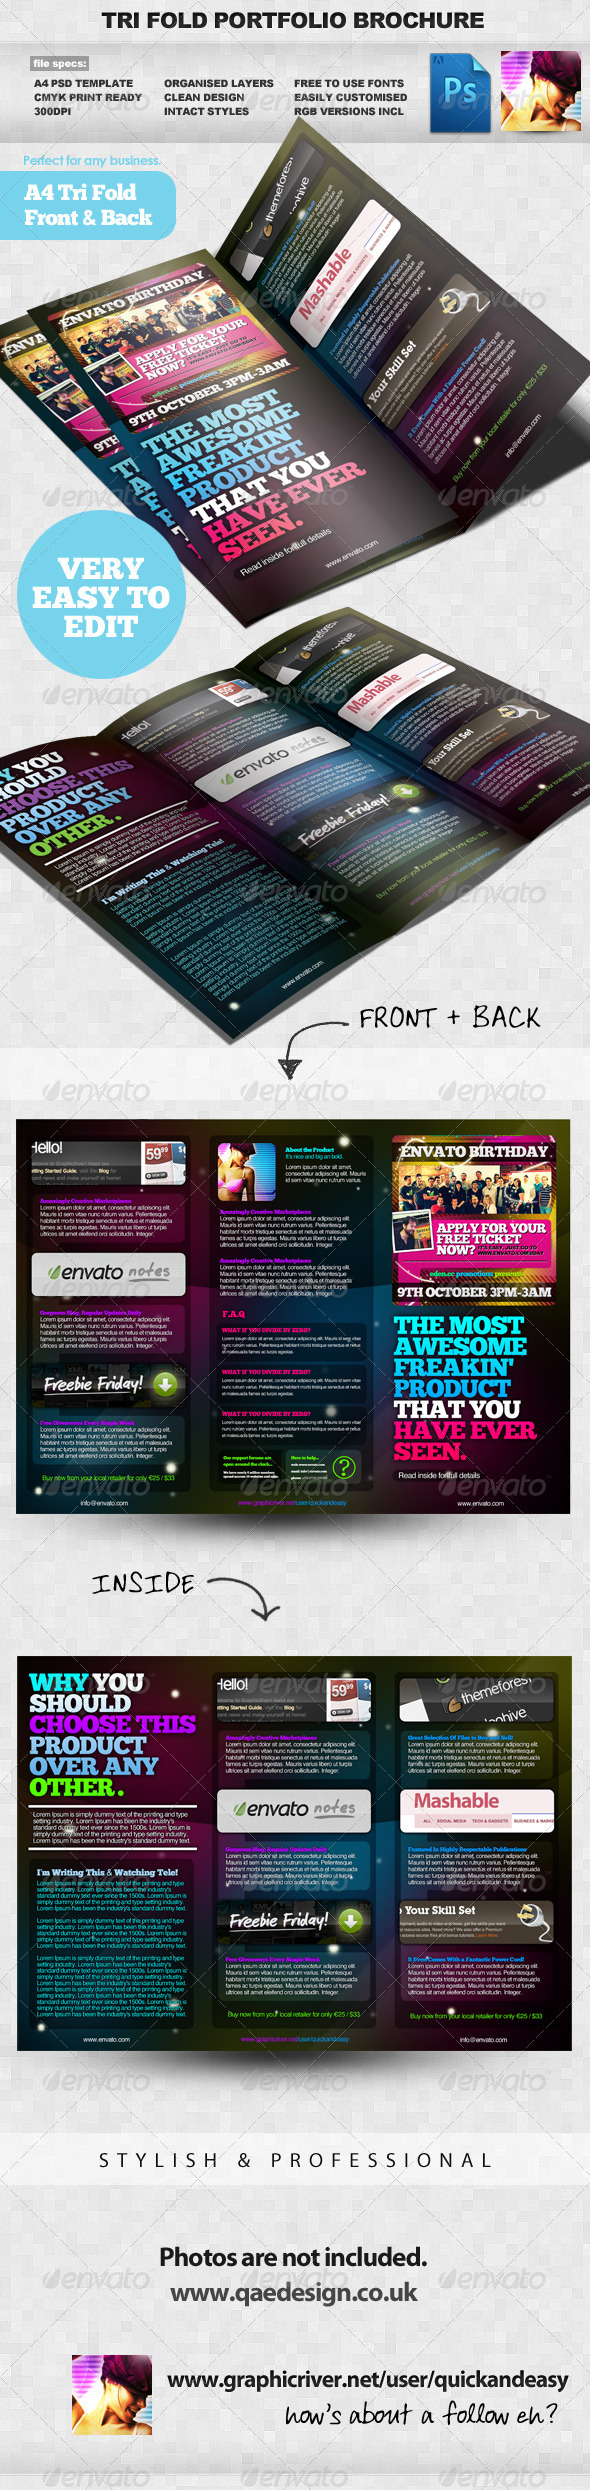 Product Portfolio A4 Three Fold Brochure Layout